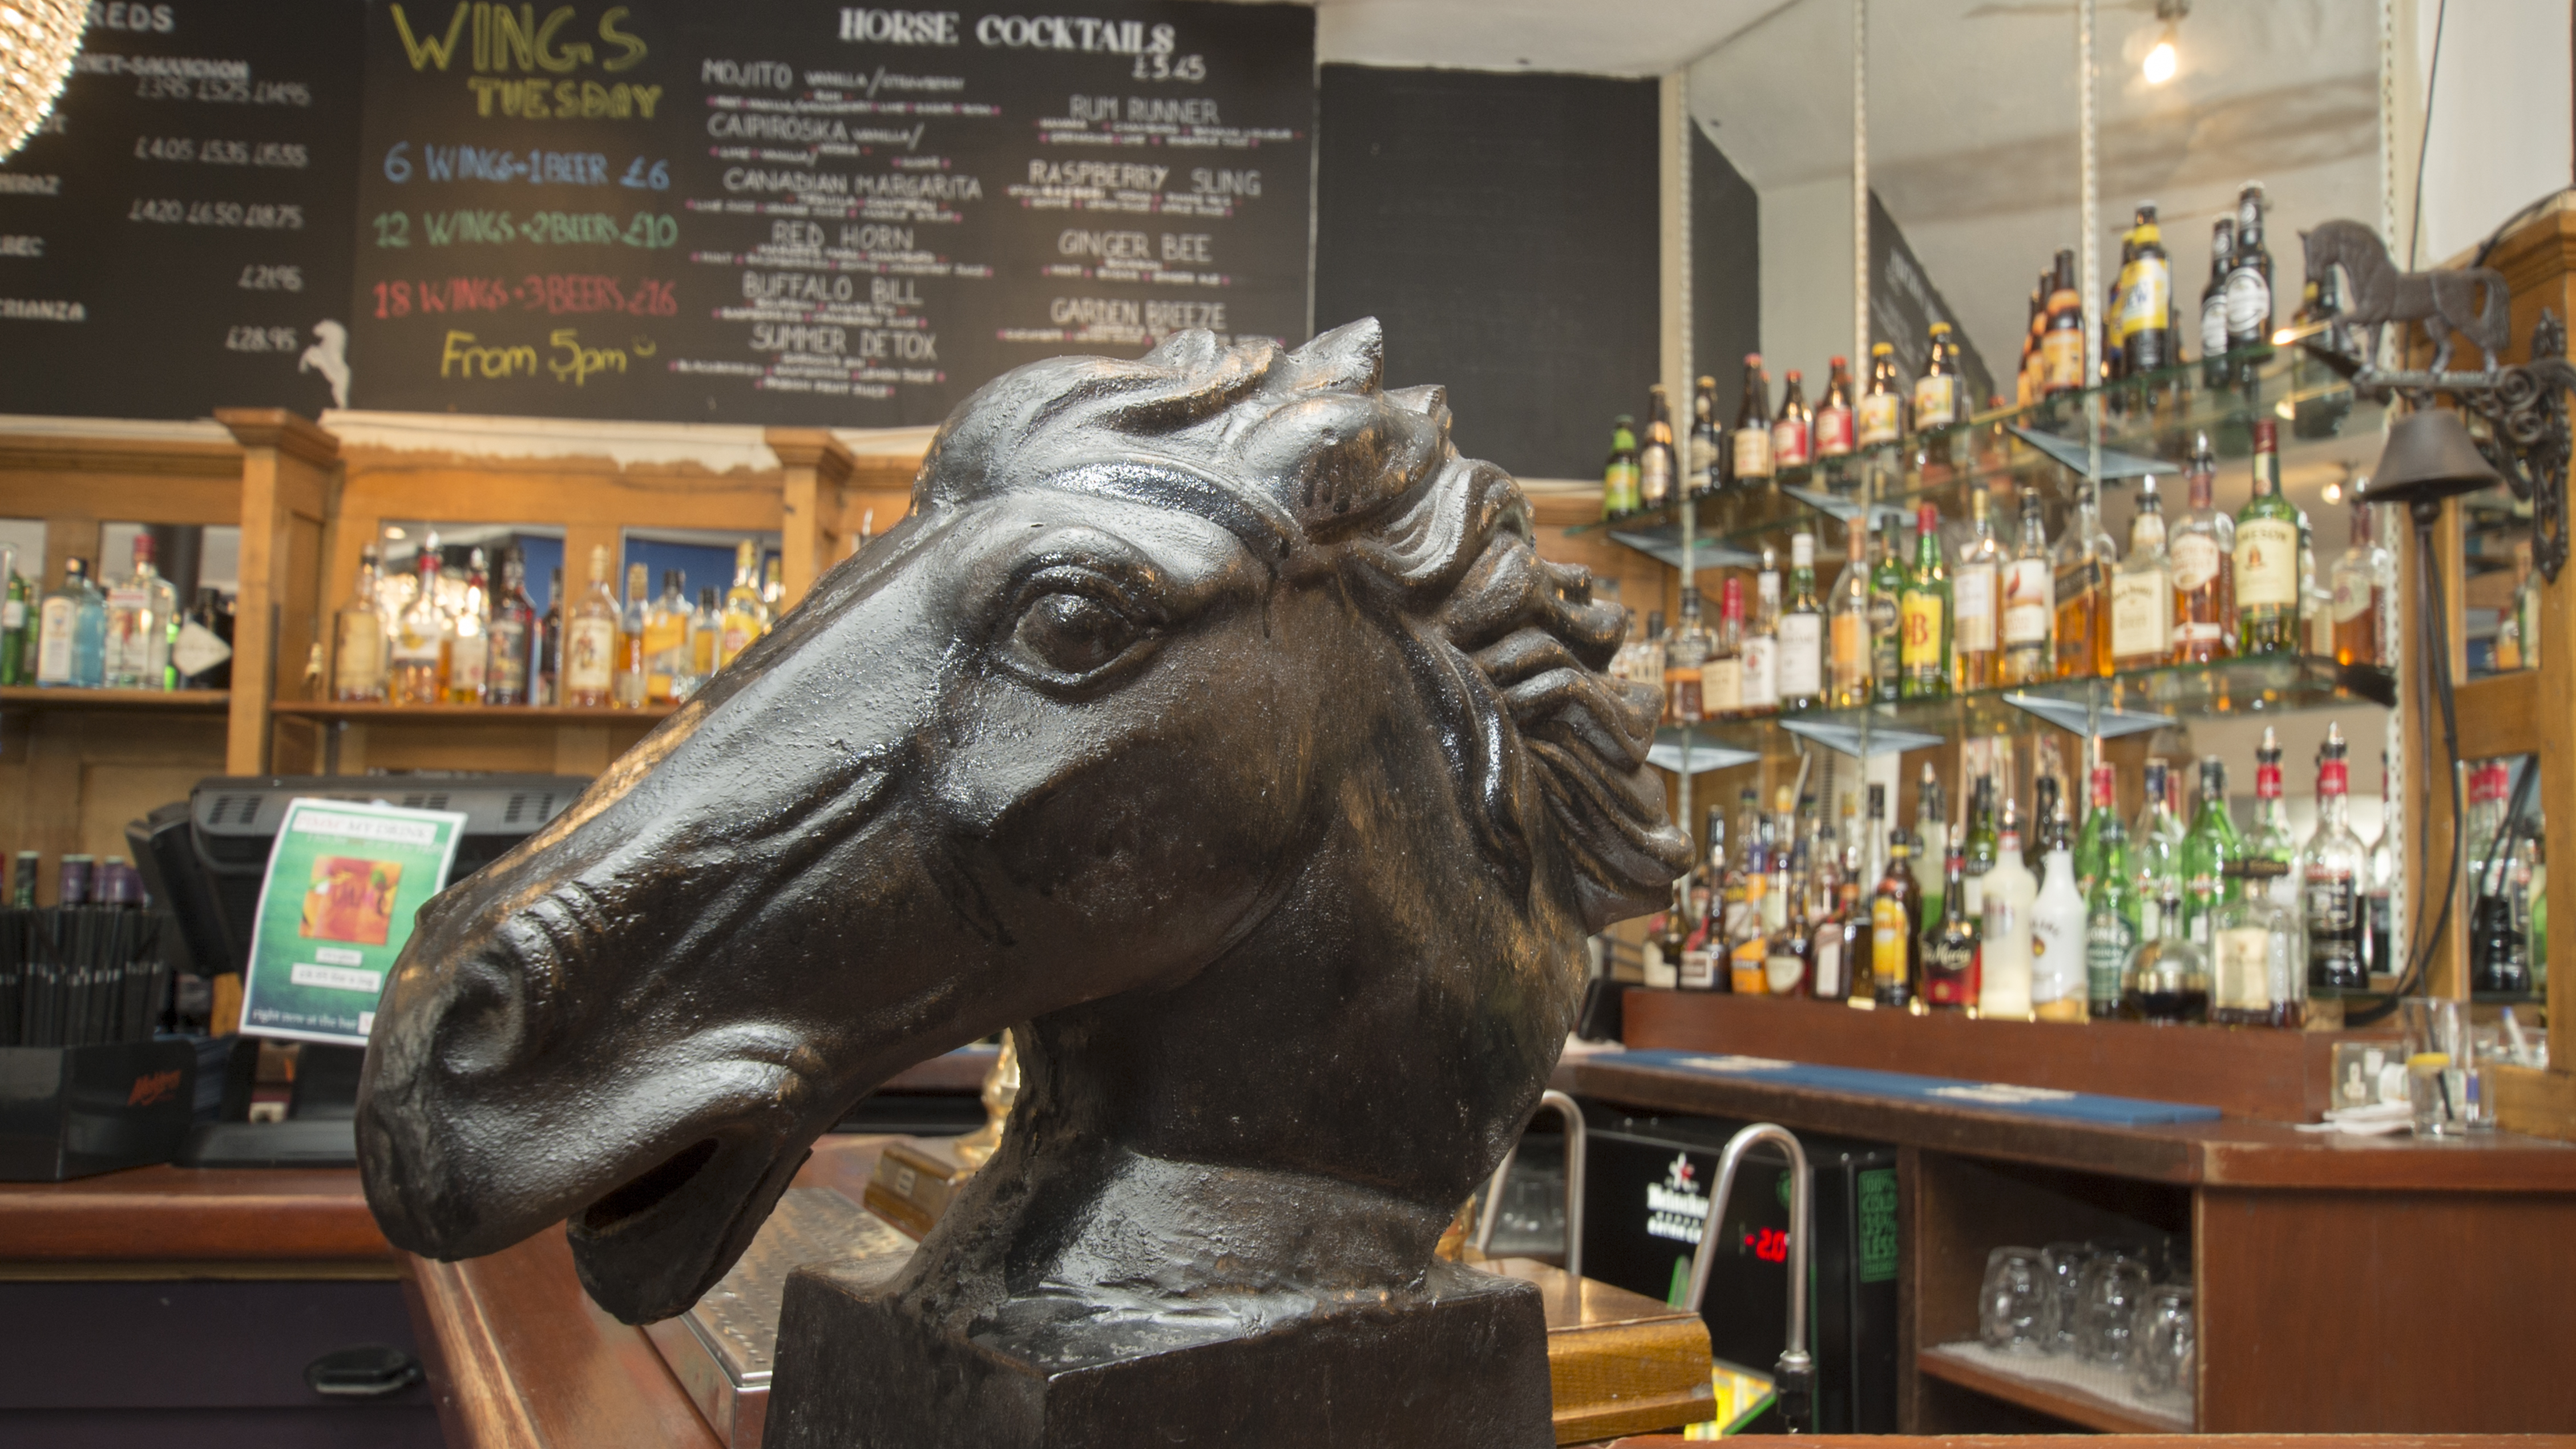 HOSTEL - The Horse and Stables